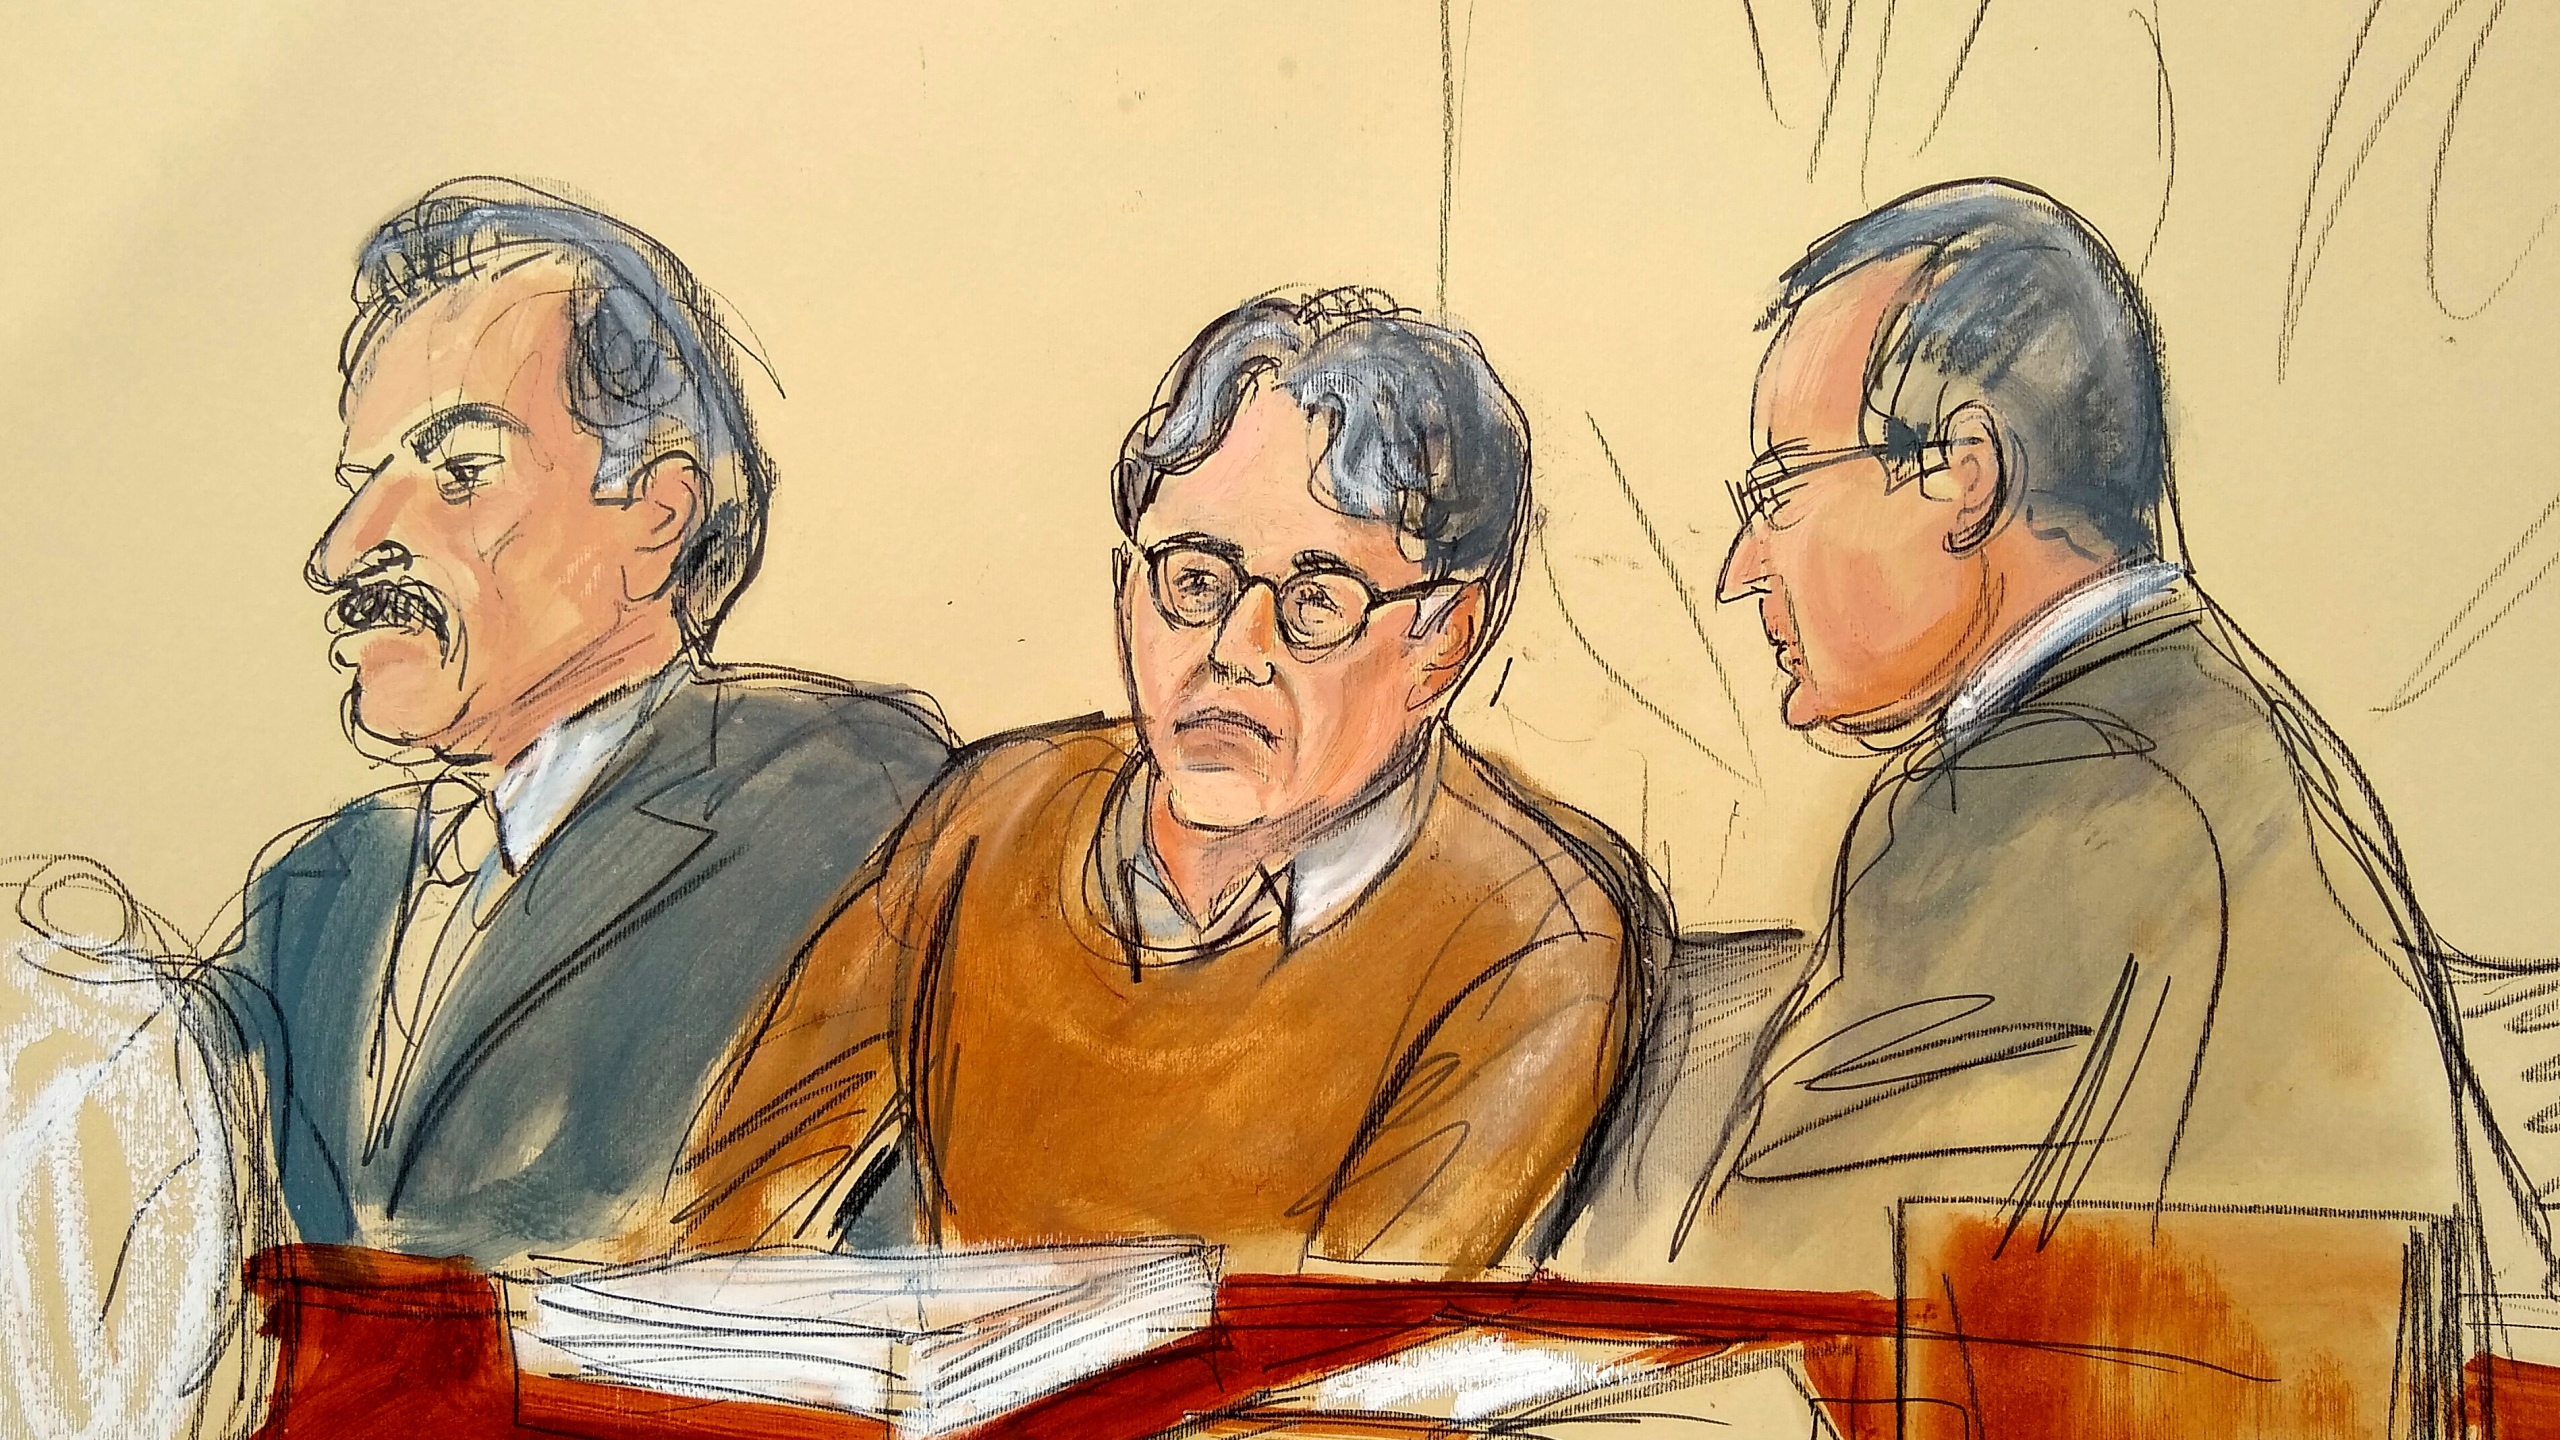 In this Tuesday, May 7, 2019, file courtroom drawing, defendant Keith Raniere, center, leader of the secretive group NXIVM, is seated between his attorneys Paul DerOhannesian, left, and Marc Agnifilo during the first day of his sex trafficking trial. Raniere, a self-improvement guru whose organization NXIVM attracted millionaires and actresses among its adherents was sentenced to 120 years in prison on Oct. 27, 2020.(Elizabeth Williams via Associated Press)